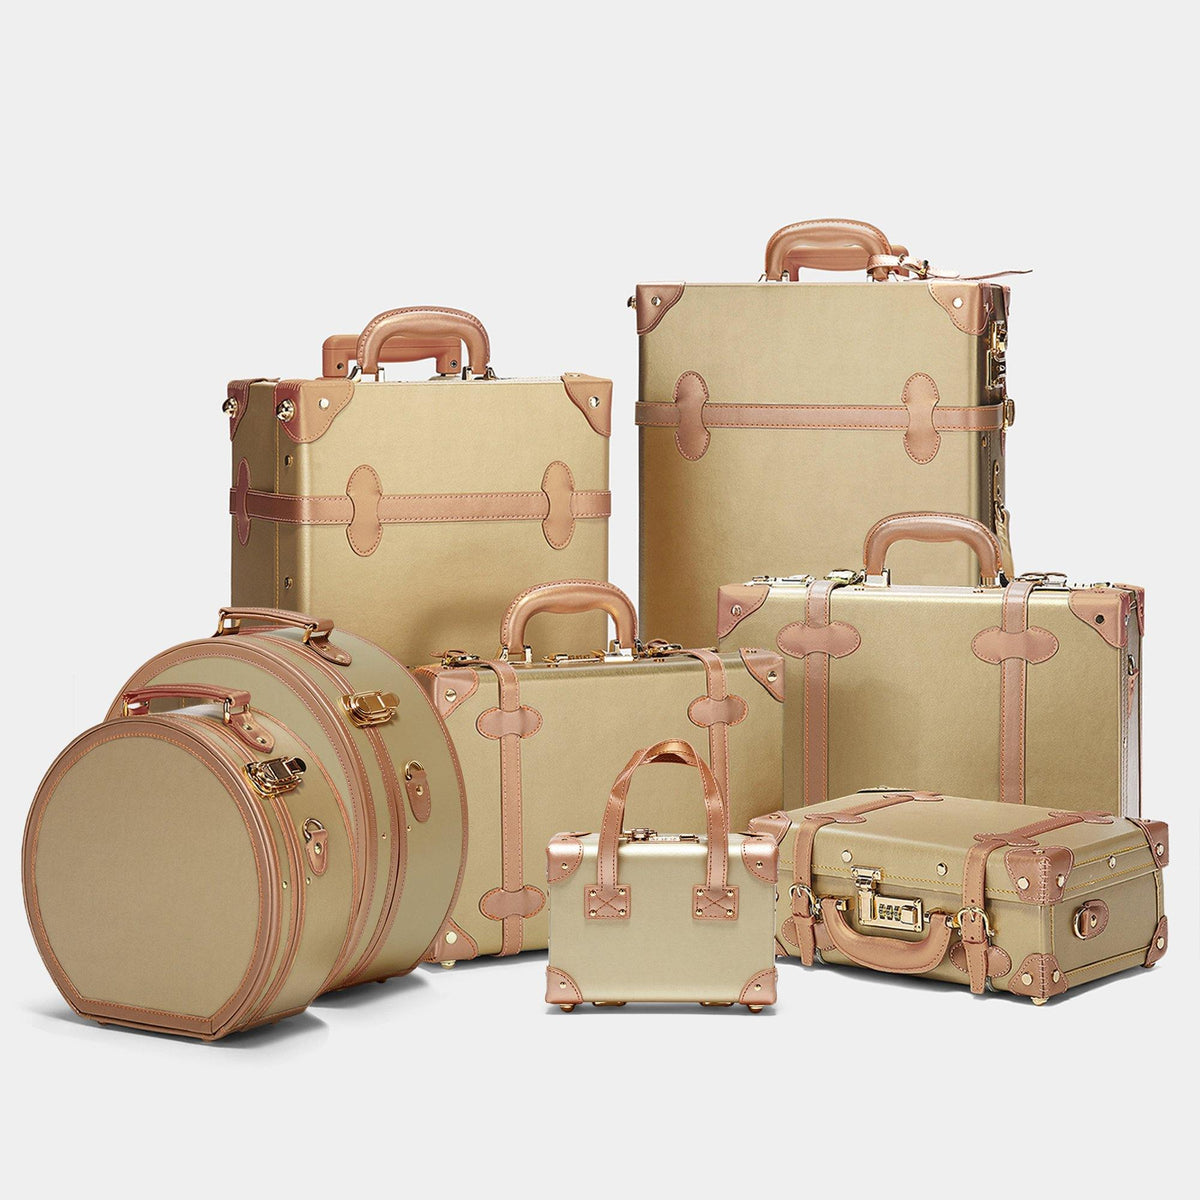 The Alchemist - Overnighter - Steamline Luggage